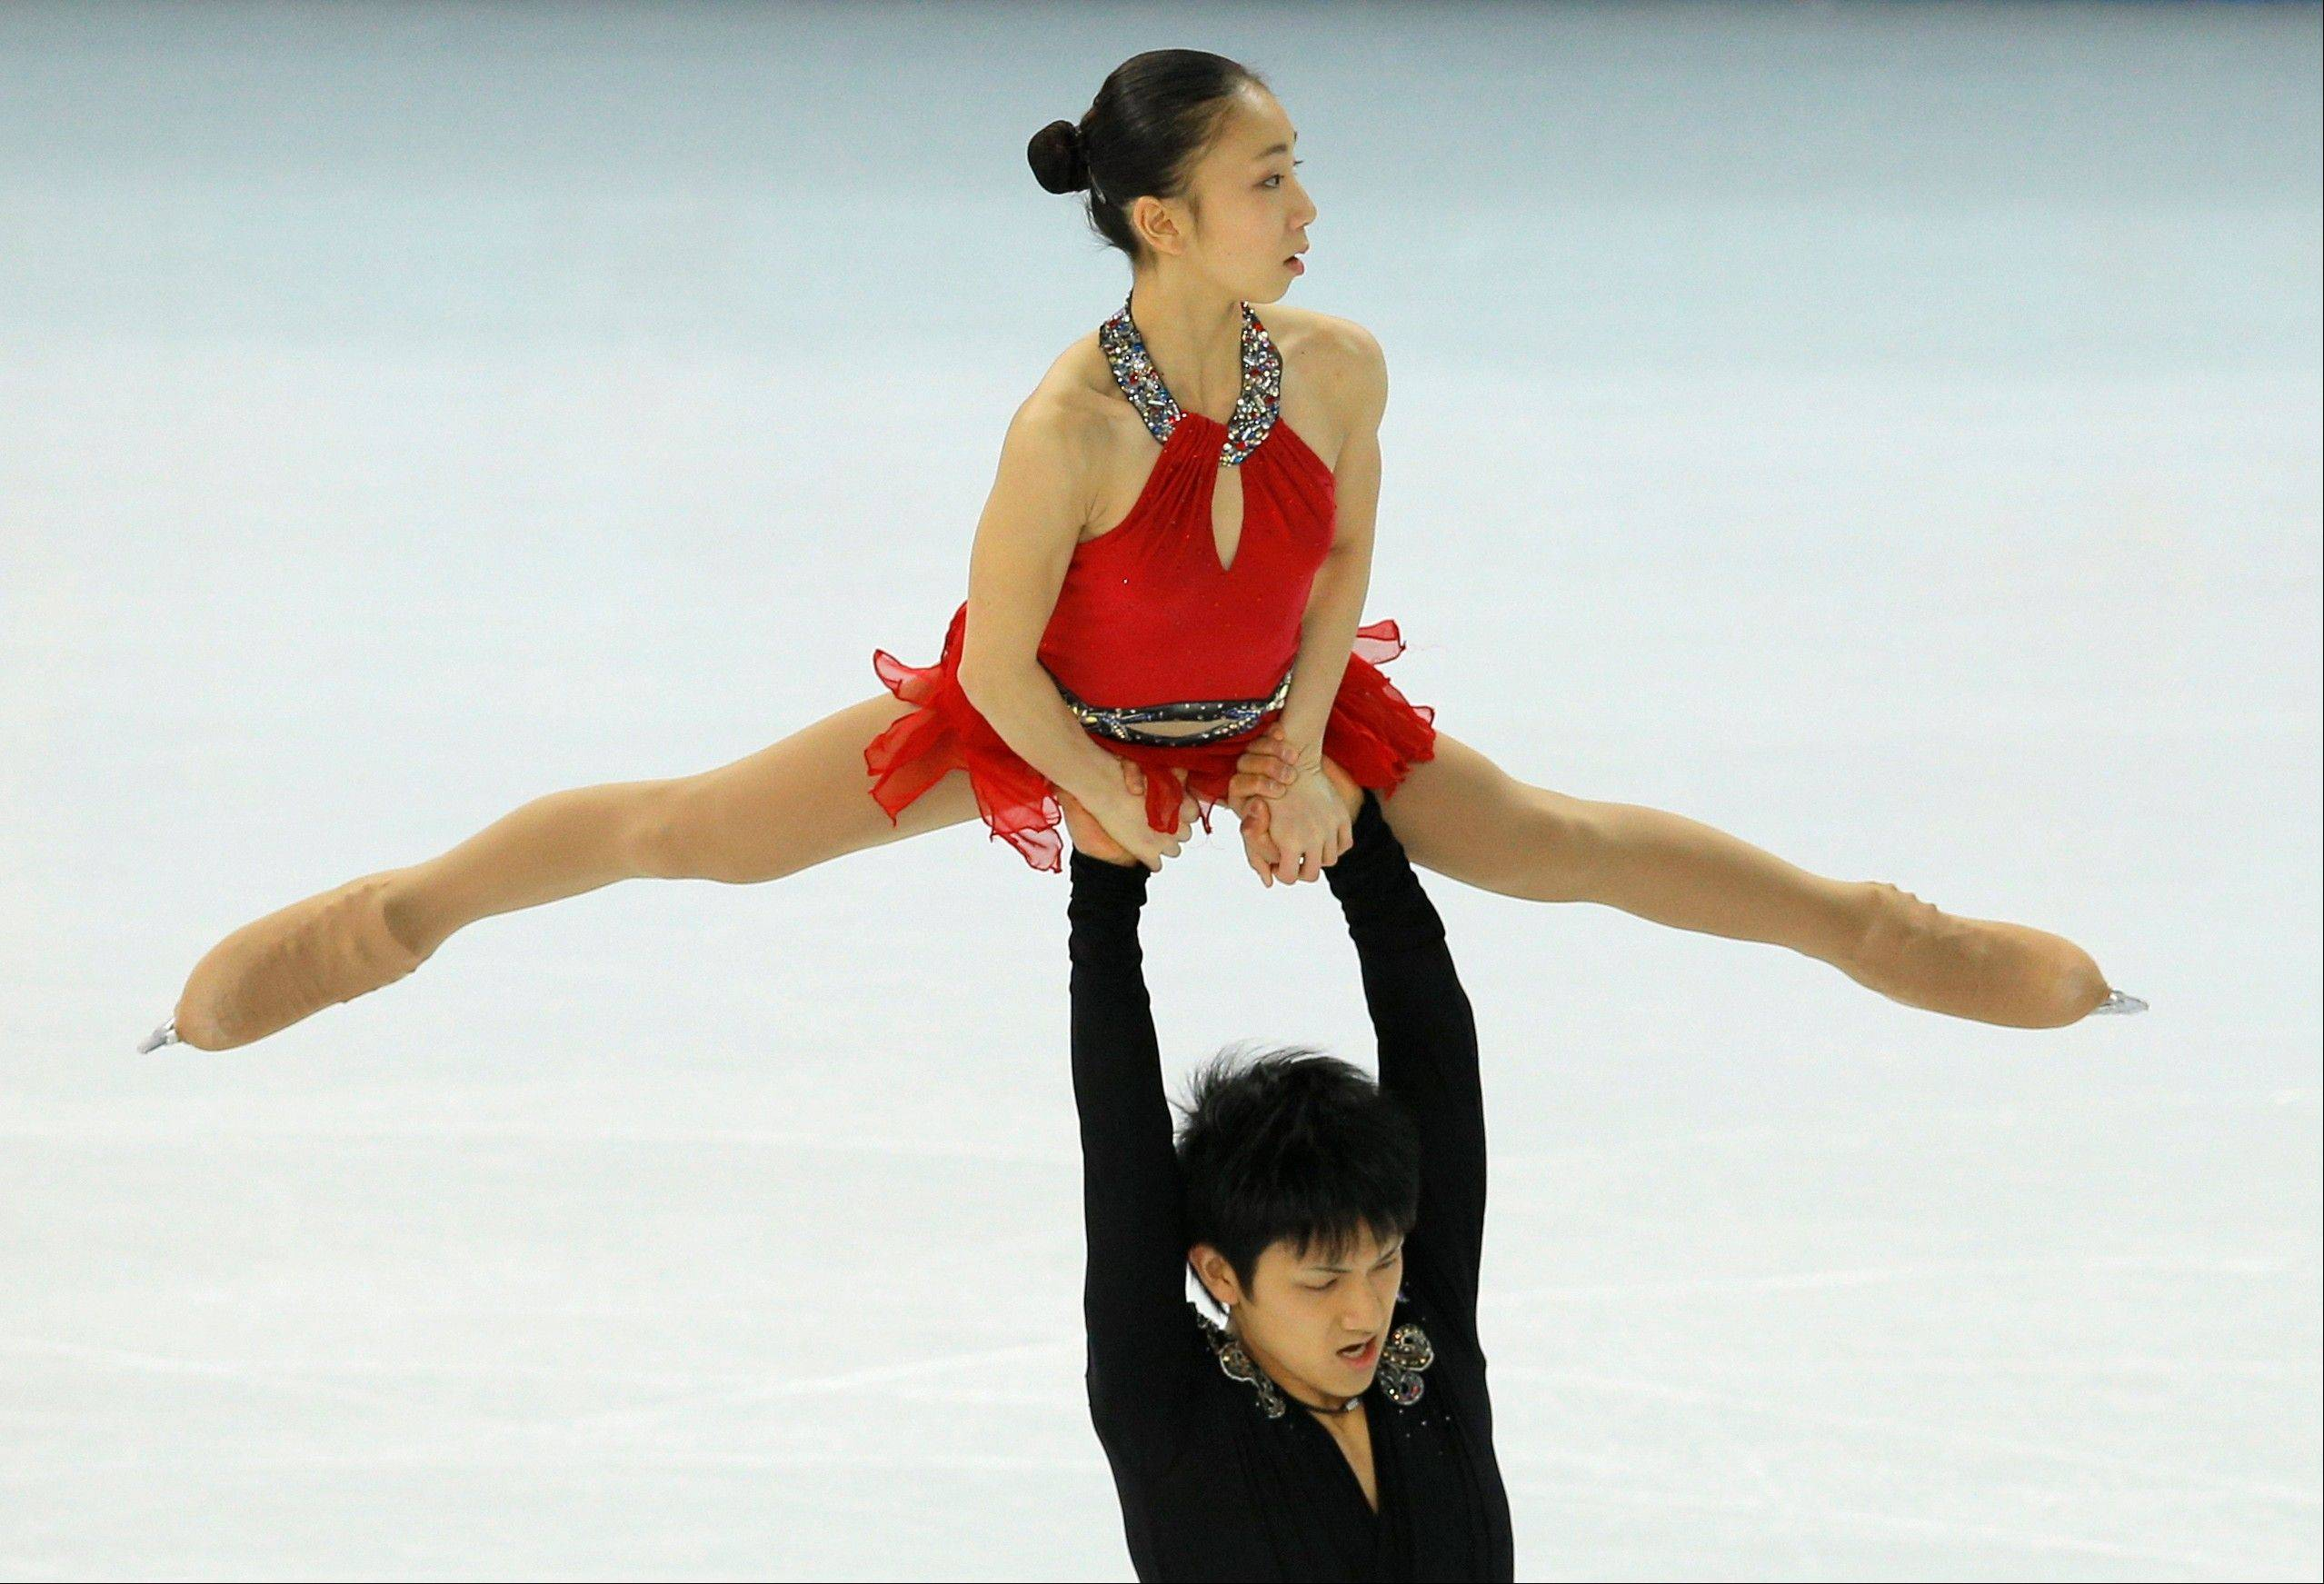 Narumi Takahashi and Ryuichi Kihara of Japan compete in the team pairs short program figure skating competition at the Iceberg Skating Palace during the 2014 Winter Olympics, Thursday, Feb. 6, 2014, in Sochi, Russia.